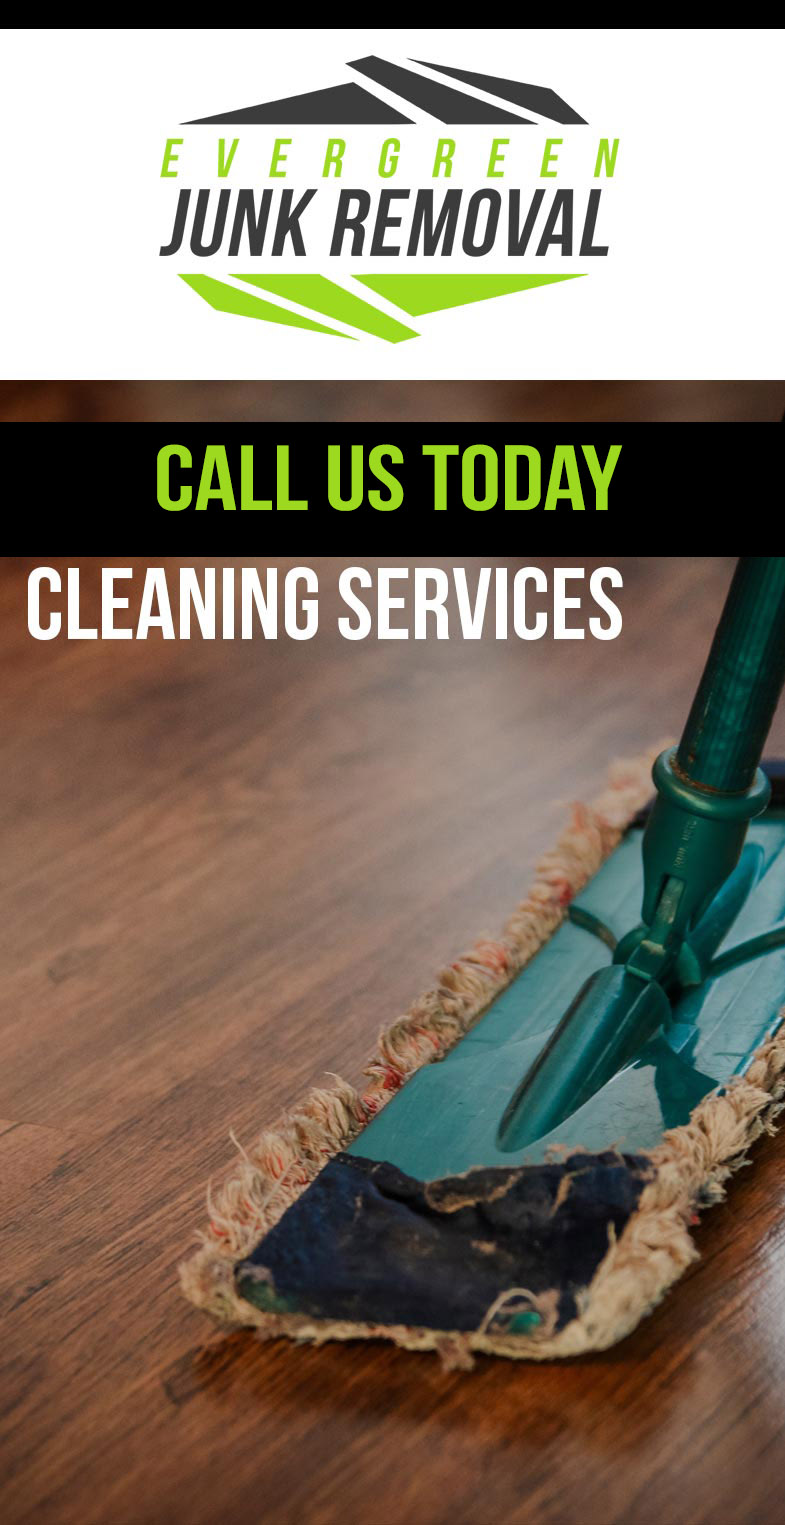 North Palm Beach Florida Maid Services